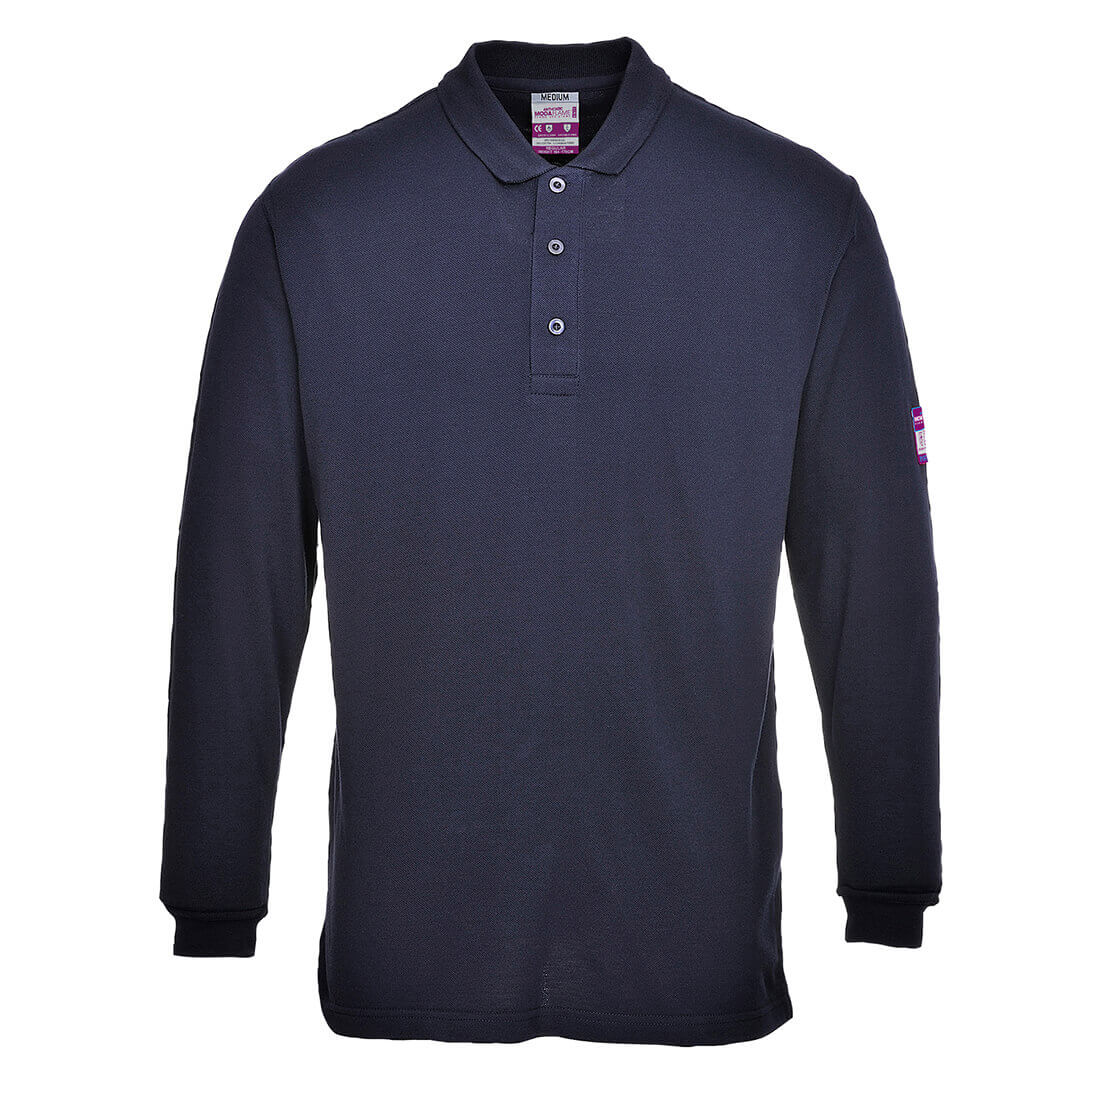 Image of Modaflame Mens Flame Resistant Antistatic Long Sleeve Polo Shirt Navy M